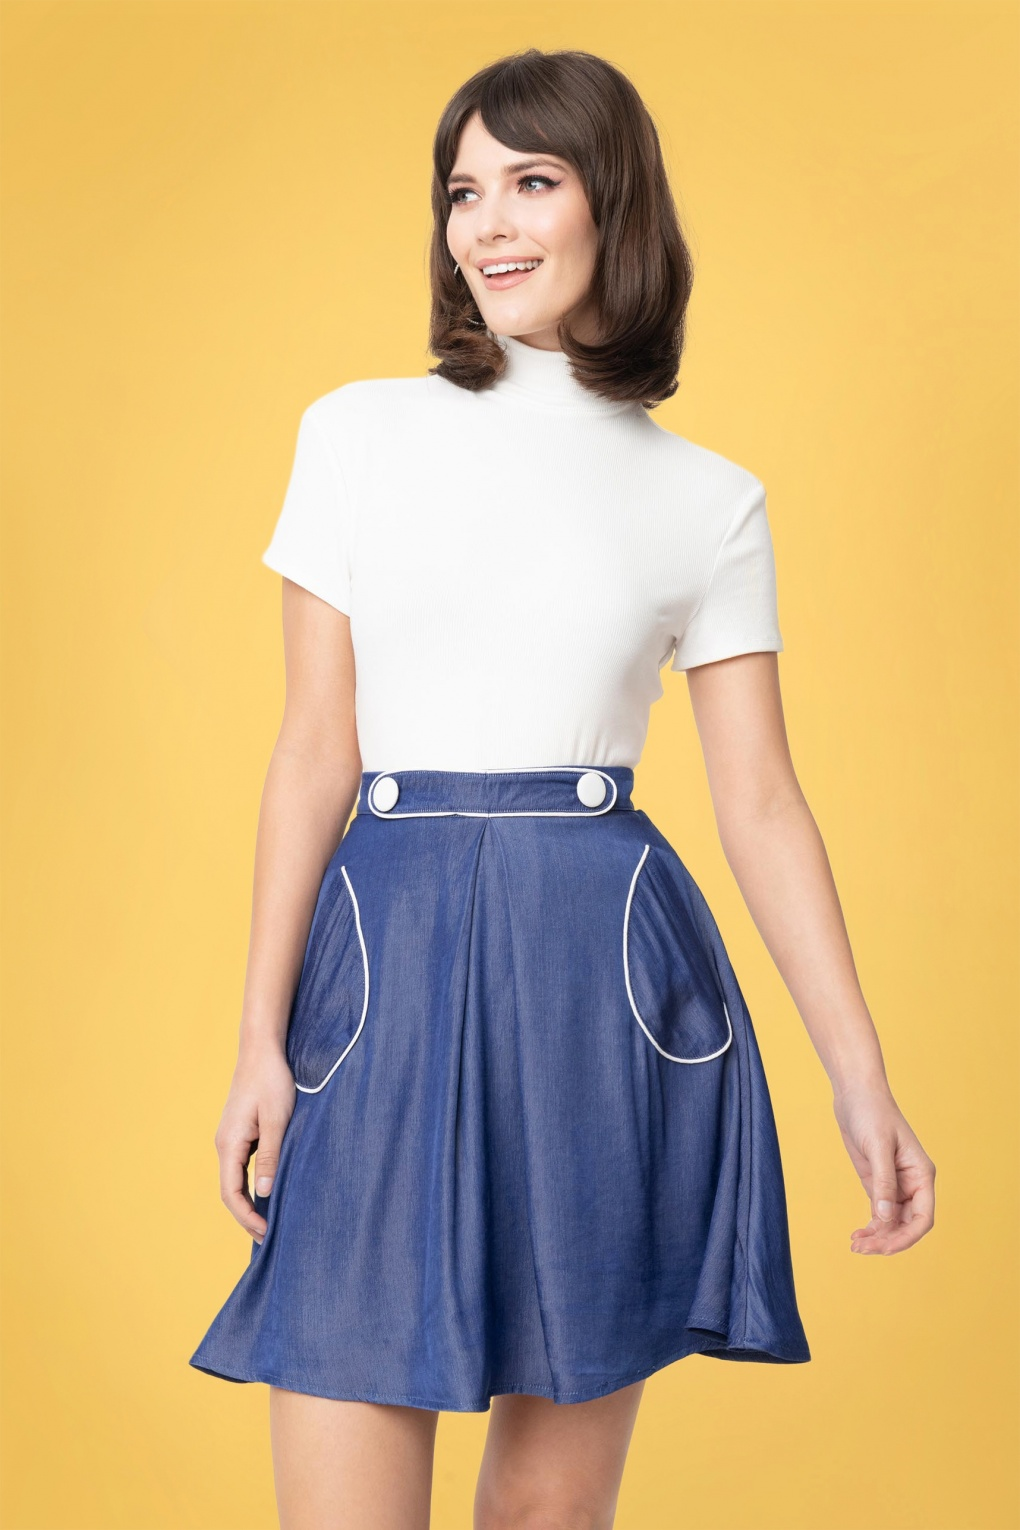 60s Dresses & 60s Style Dresses UK 60s Smak Parlour Chambray Sitting Pretty Skirt in Denim Blue £37.80 AT vintagedancer.com